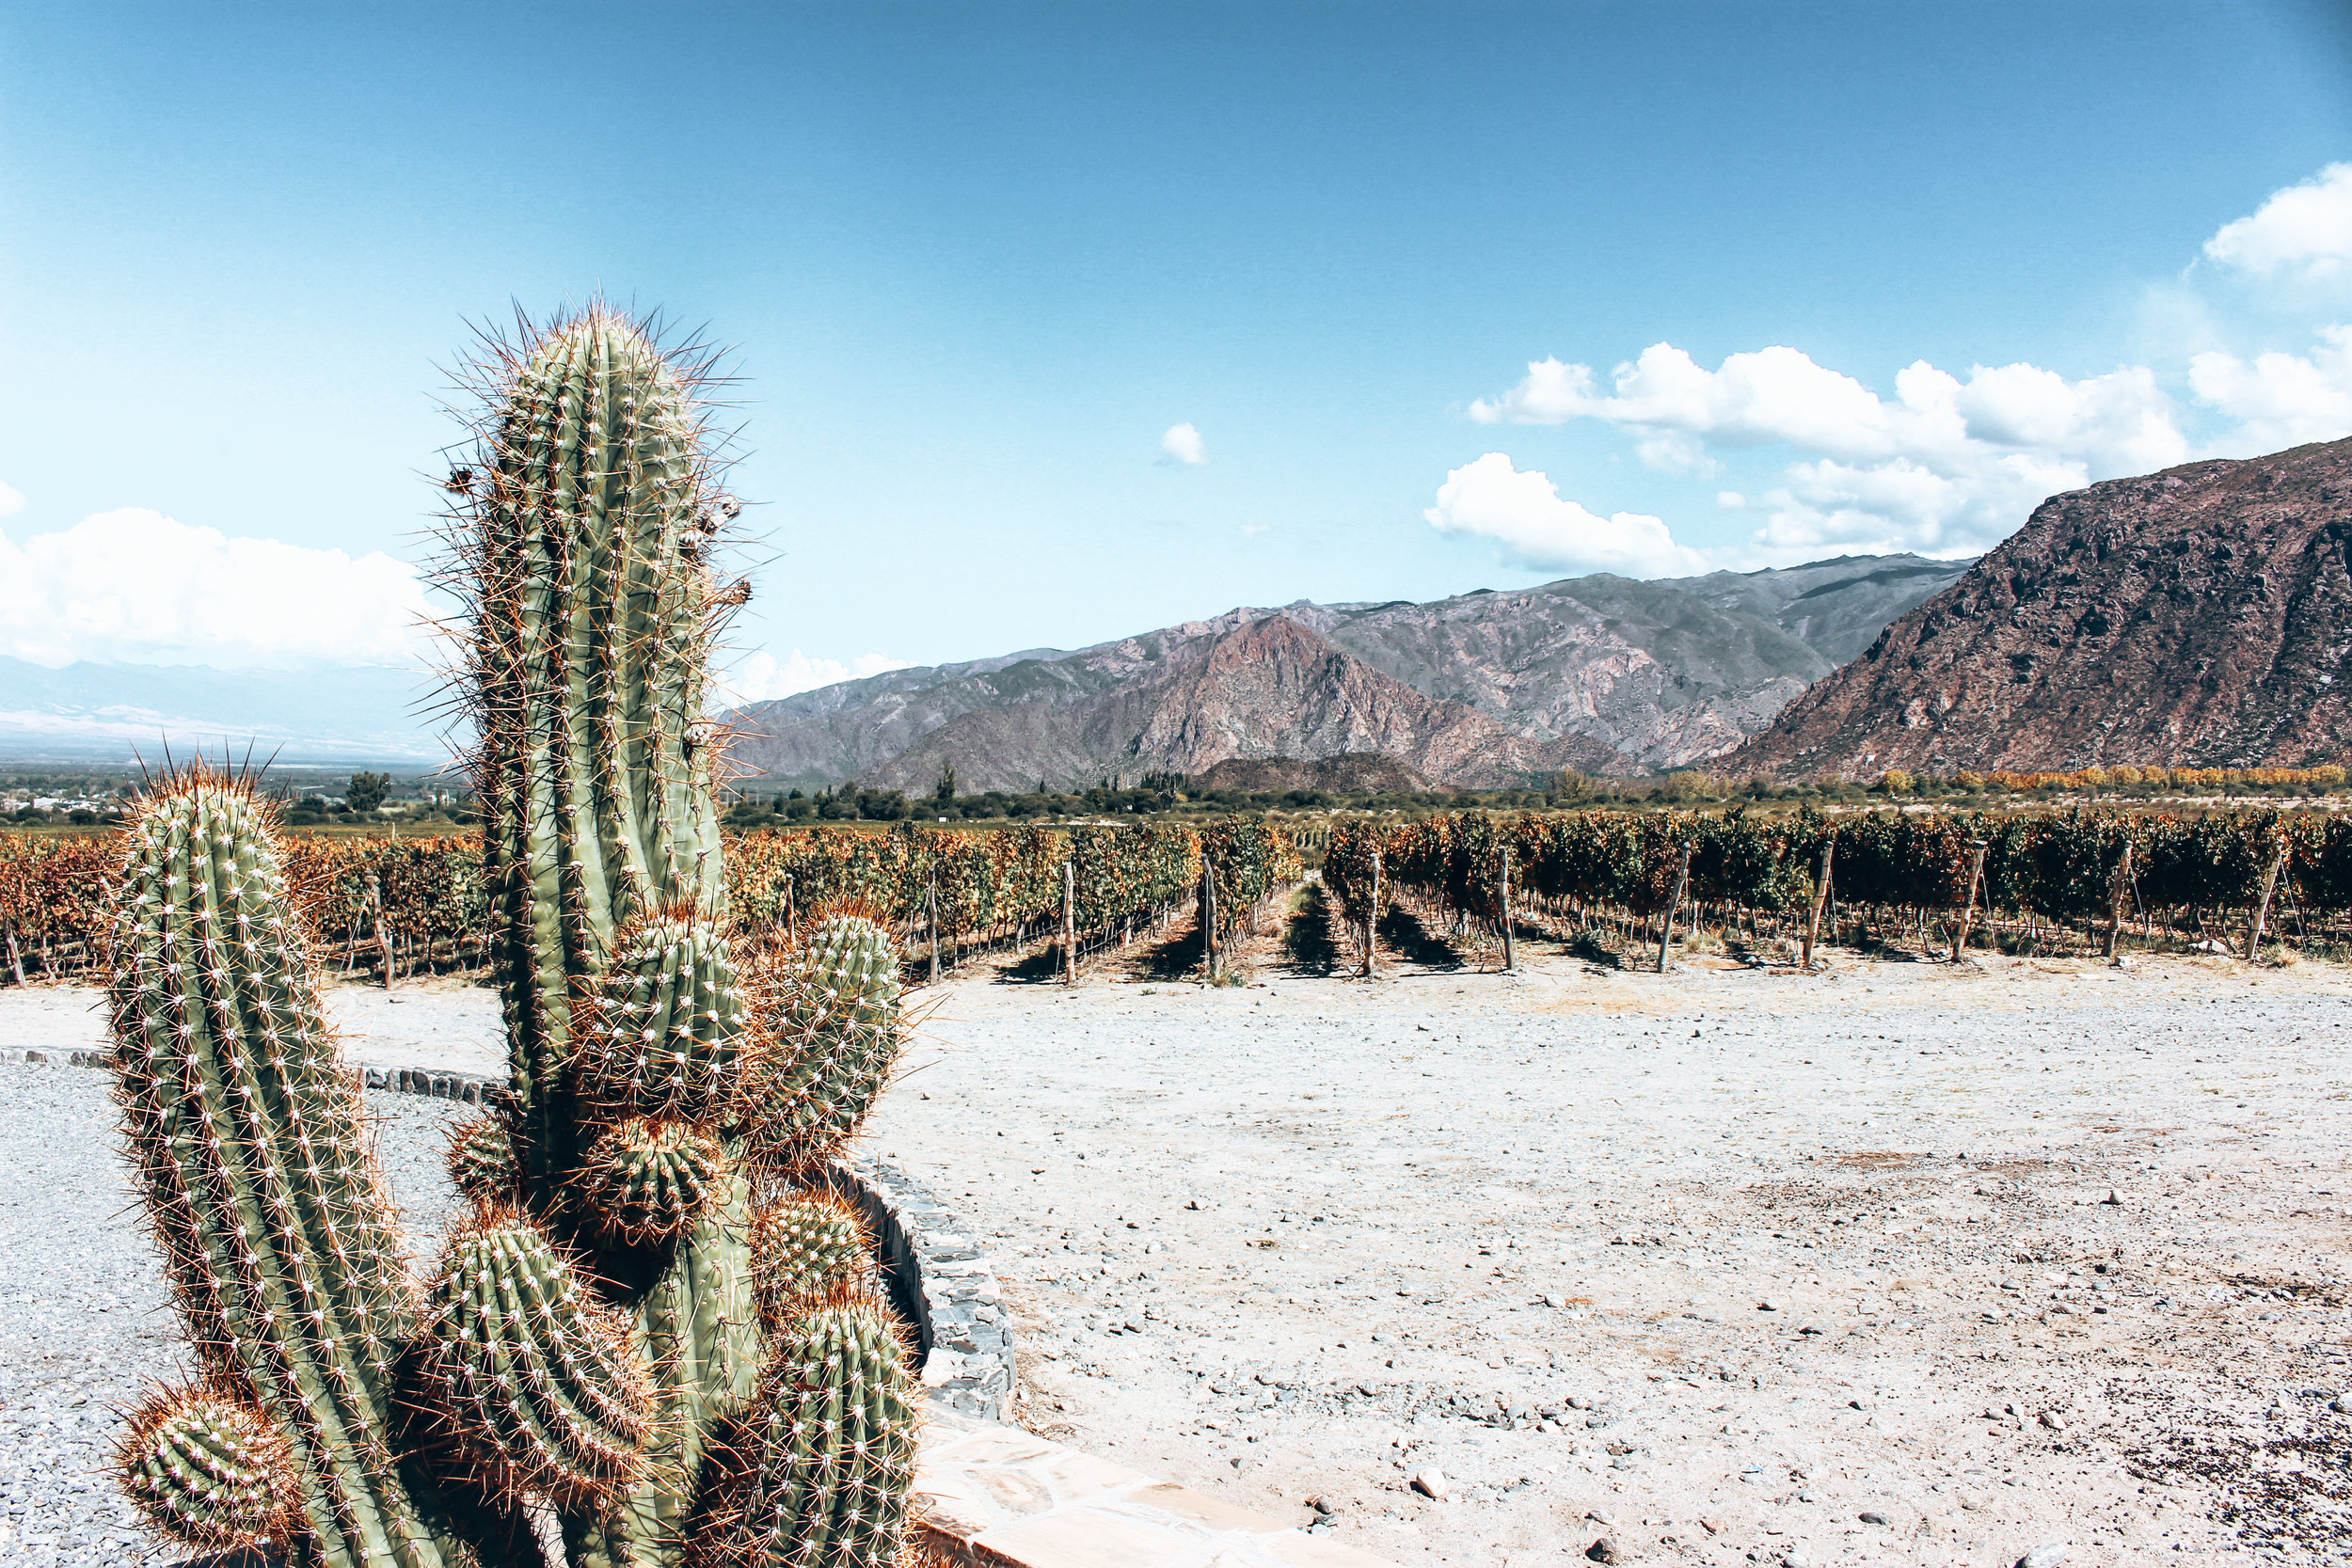 Bodega Piatelli Winery - Cafayate